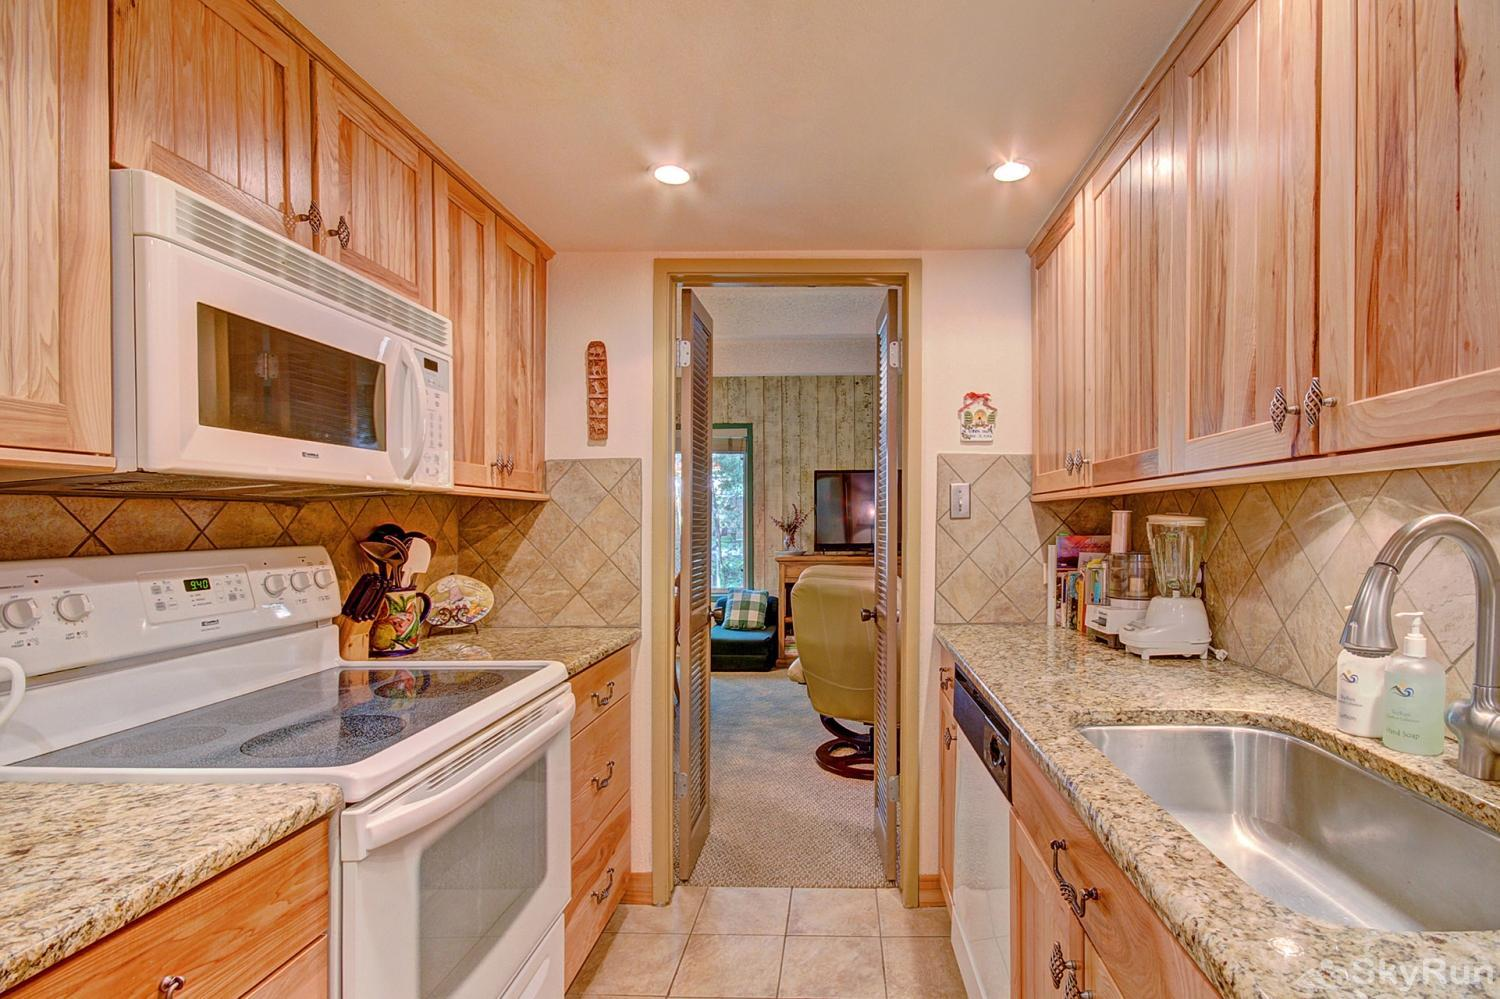 Columbine 102 Fully equipped kitchen updated with modern appliances